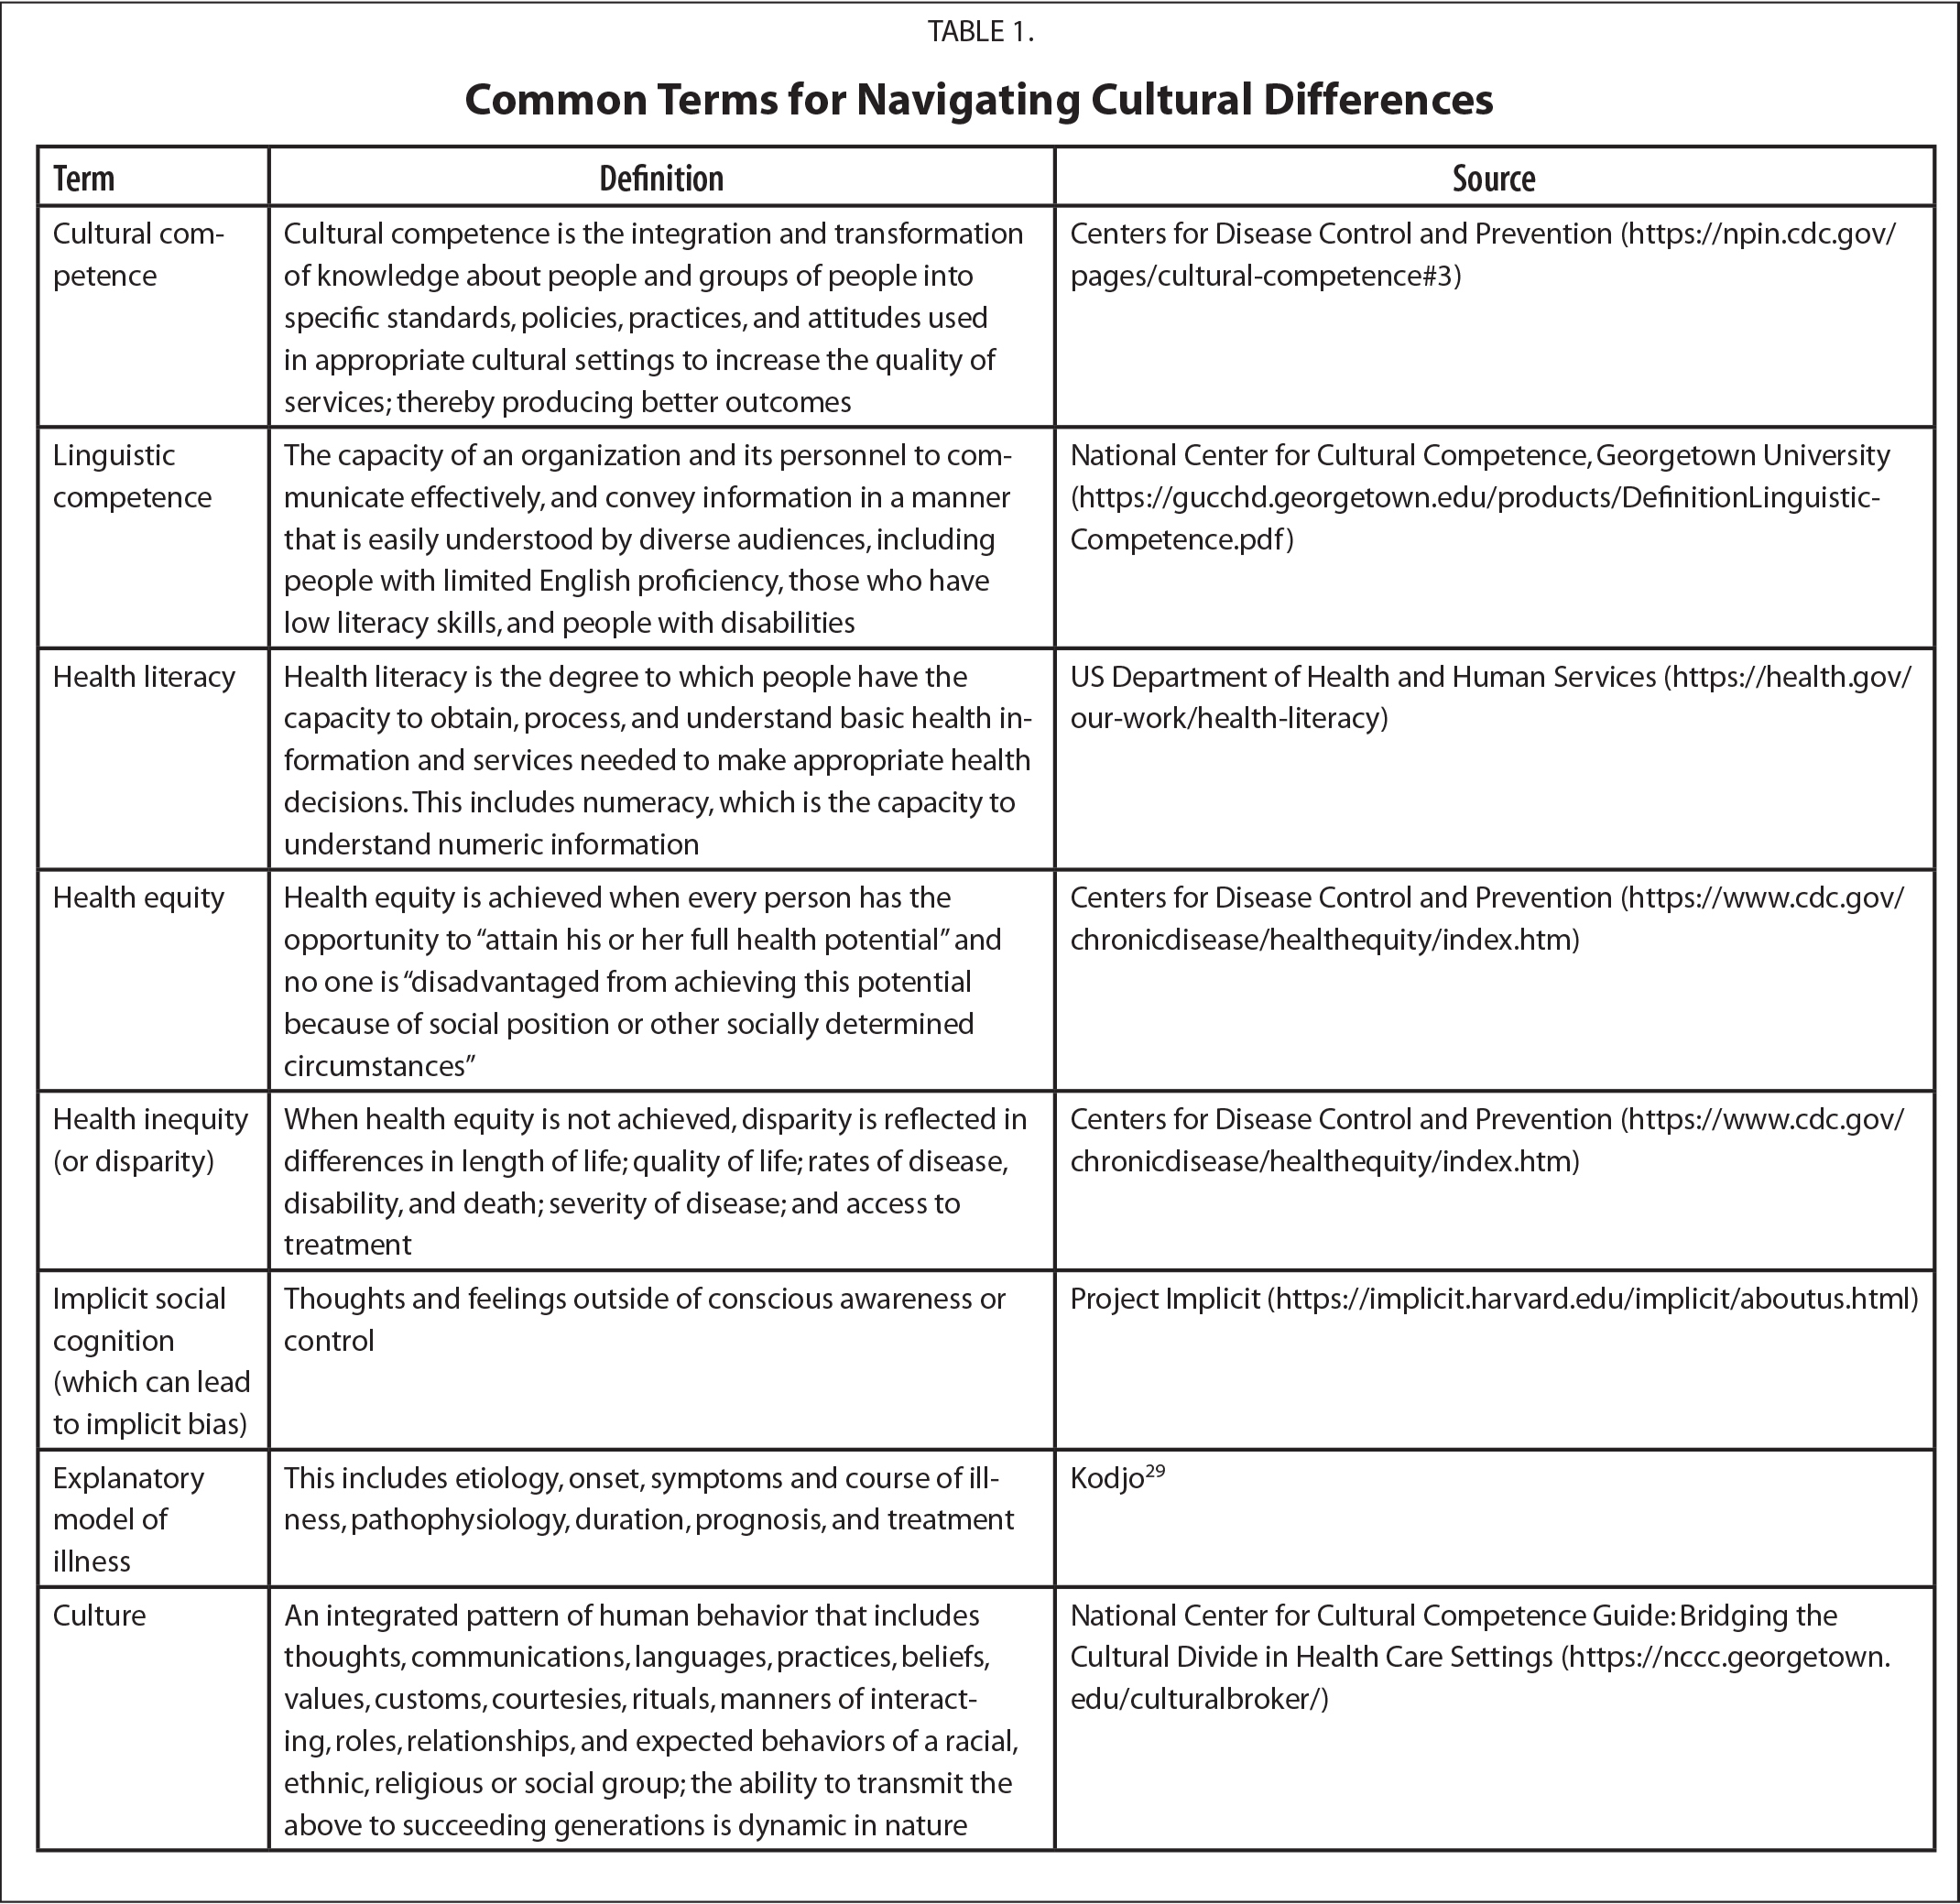 Common Terms for Navigating Cultural Differences